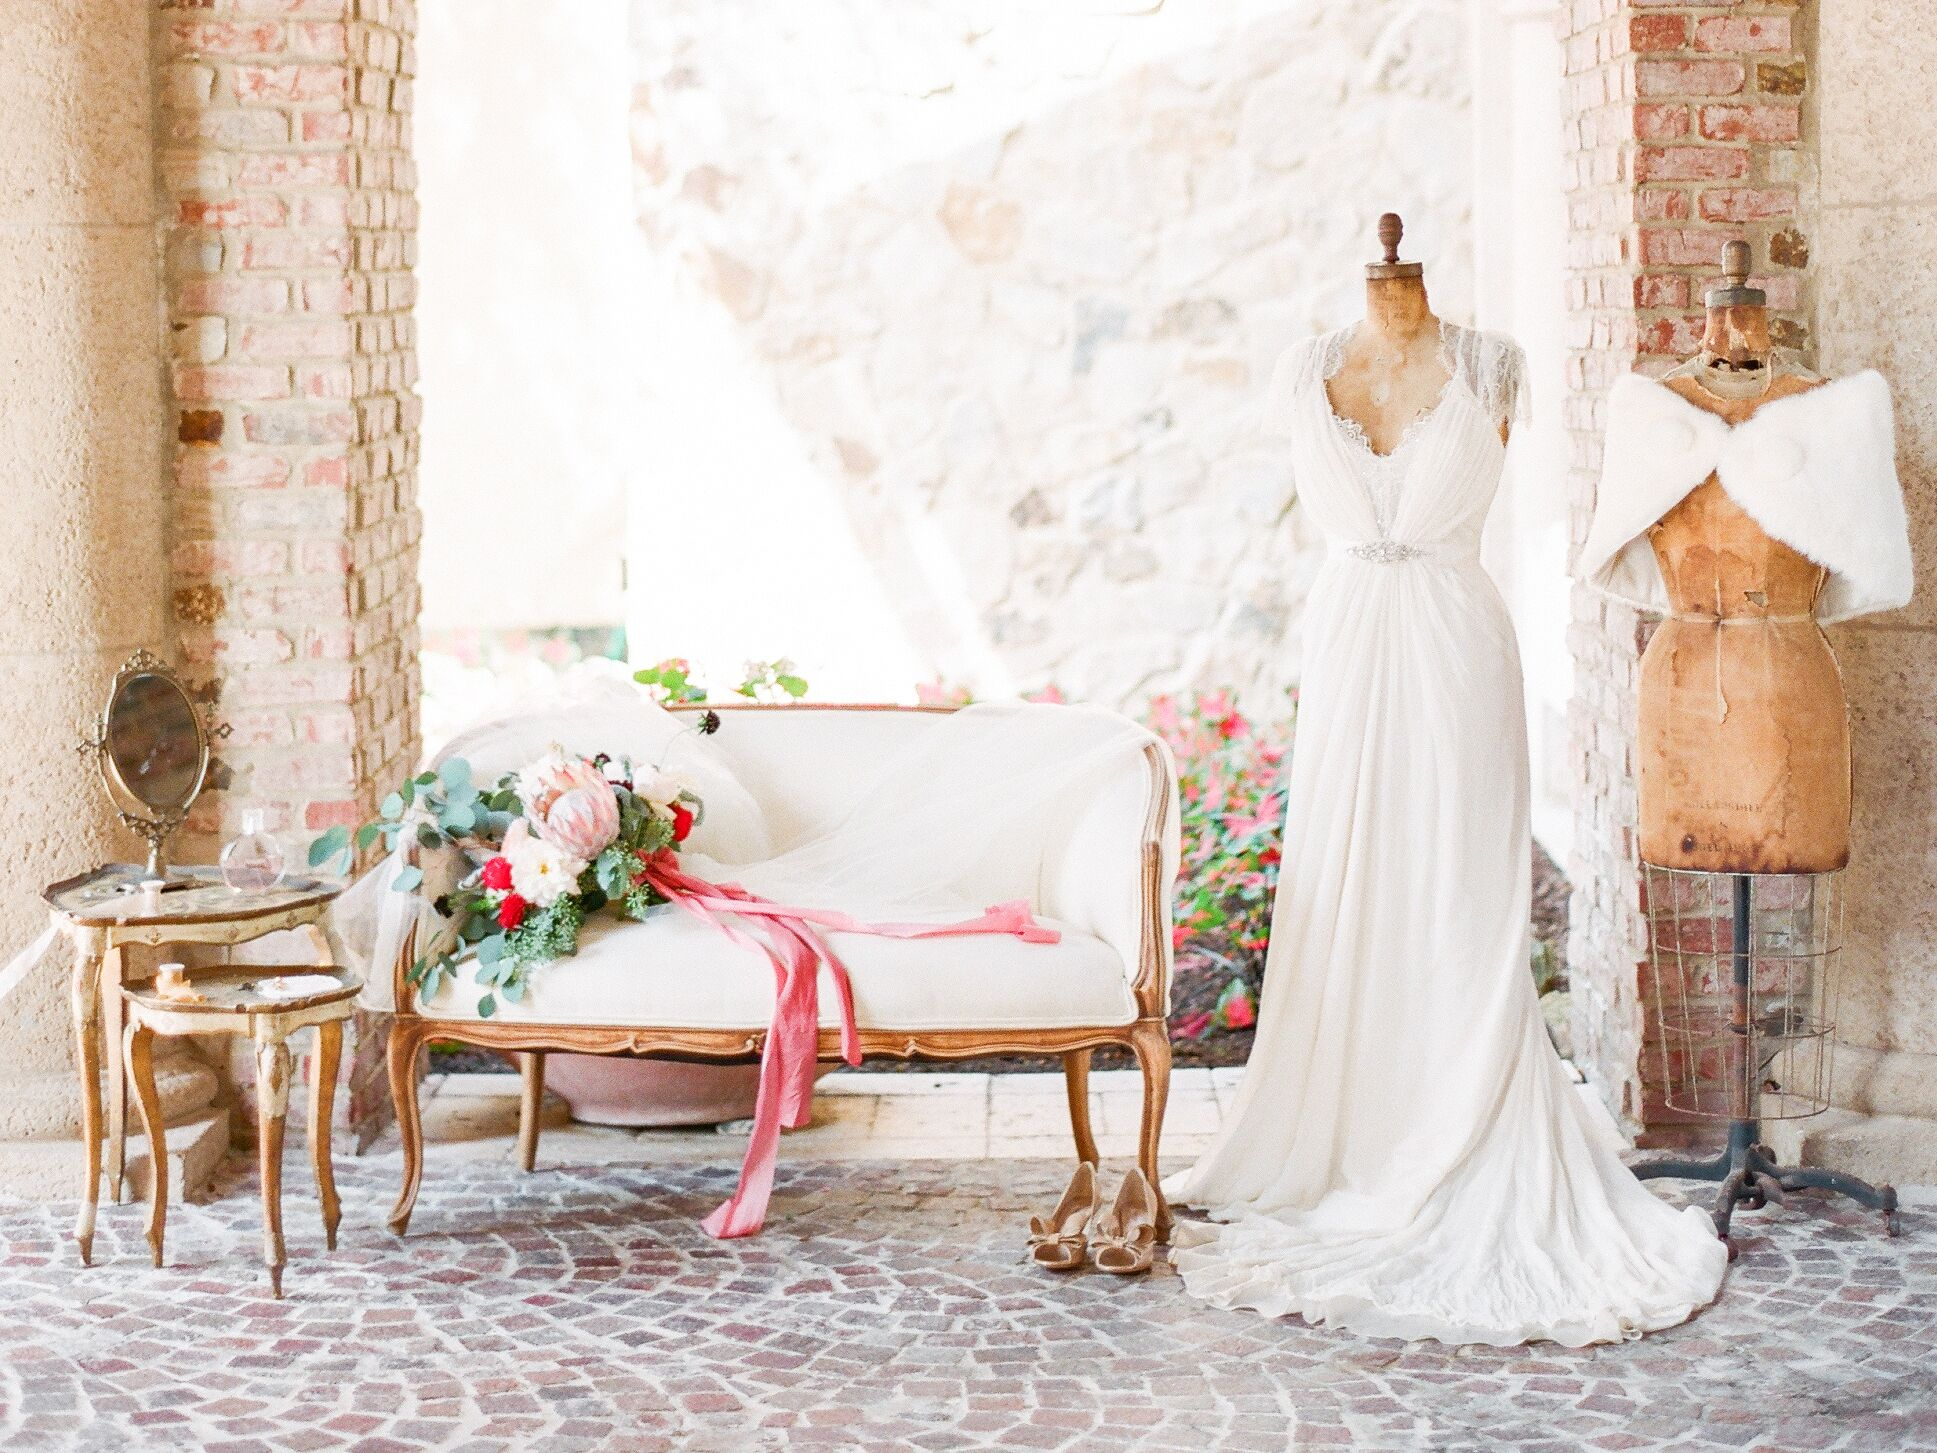 How To Find The Best Fit For Your Shape - Bridal Fashion - Wedding ...